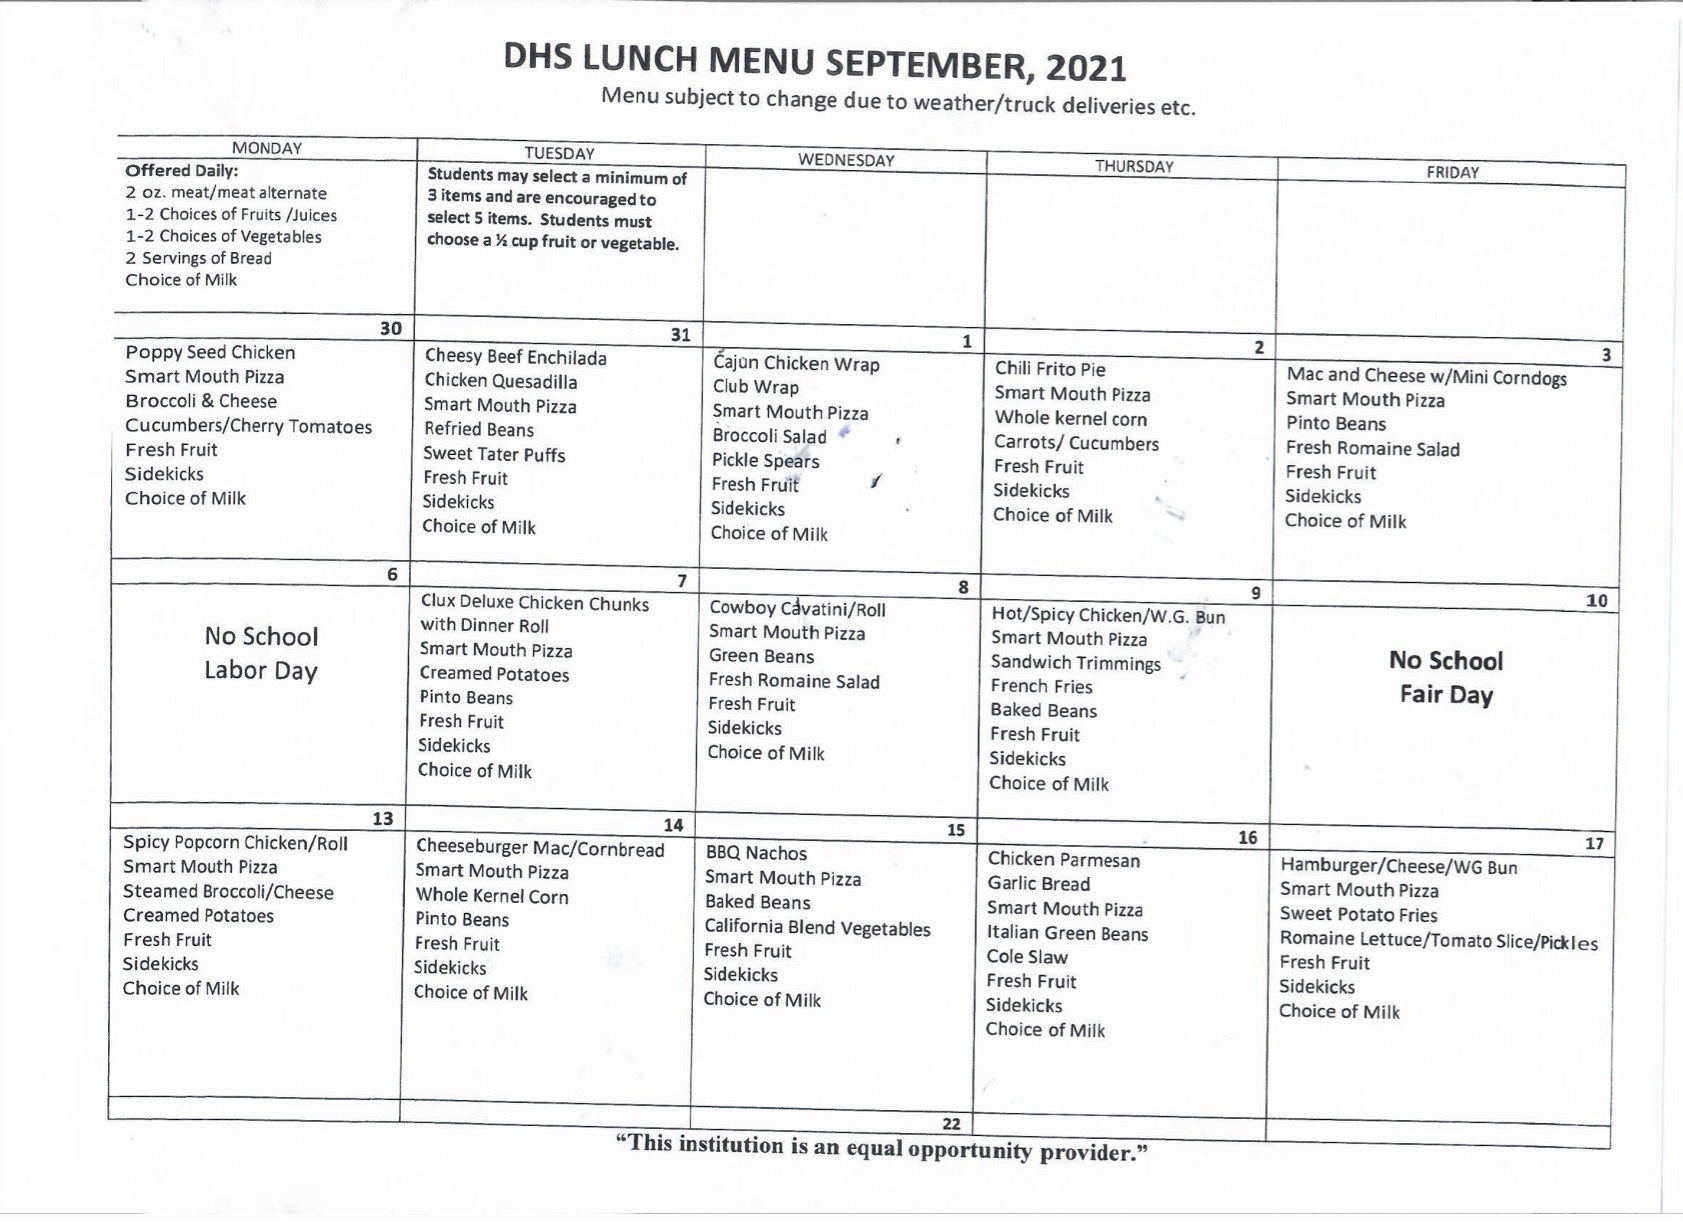 DHS Lunch Menu Page 1